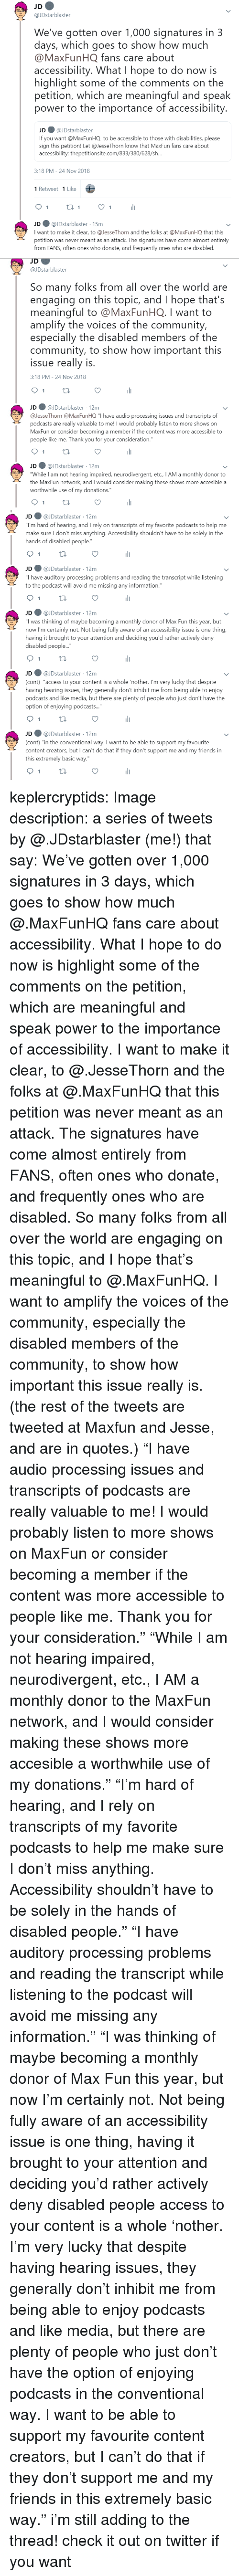 """processing: JDstarblaster  We've gotten over 1,000 signatures in 3  days, which goes to show how much  @MaxFunHQ fans care about  accessibility. What I hope to do now is  highlight some of the comments on the  petition, which are meaningful and speak  power to the importance of accessibility  JD ● @lDstarblaster  If you want @MaxFunHQ to be accessible to those with disabilities, please  sign this petition! Let @JesseThorn know that MaxFun fans care about  accessibility: thepetitionsite.com/833/380/628/s...  3:18 PM-24 Nov 2018  1 Retweet 1 Like  JD @JDstarblaster 15m  I want to make it clear, to @JesseThorn and the folks at @MaxFunHQ that this  petition was never meant as an attack. The signatures have come almost entirely  from FANS, often ones who donate, and frequently ones who are disabled.   JD  @JDstarblaster  So many folks from all over the world are  engaging on this topic, and I hope that's  meaningful to @MaxFunHQ. I want to  amplify the voices of the community,  especially the disabled members of the  community, to show how important this  issue really is  3:18 PM-24 Nov 2018  JD ● @JDstarblaster· 12m  @lesseThorn @MaxFun HQ """"I have audio processing issues and transcripts of  о,  dcasts are really valuable to me! I would probably listen to more shows on  MaxFun or consider becoming a member if the content was more accessible to  people like me. Thank you for your consideration.""""  JD@JDstarblaster 12m  While I am not hearing impaired, neurodivergent, etc., IAM a monthly donor to  the MaxFun network, and I would consider making these shows more accesible a  worthwhile use of my donations.""""   JD@JDstarblaster 12m  ou""""I'm hard of hearing, and I rely on transcripts of my favorite podcasts to help me  make sure I don't miss anything. Accessibility shouldn't have to be solely in the  hands of disabled people  JD@JDstarblaster 12m  have auditory processing problems and reading the transcript while listening  to the podcast will avoid me missing any information."""" """